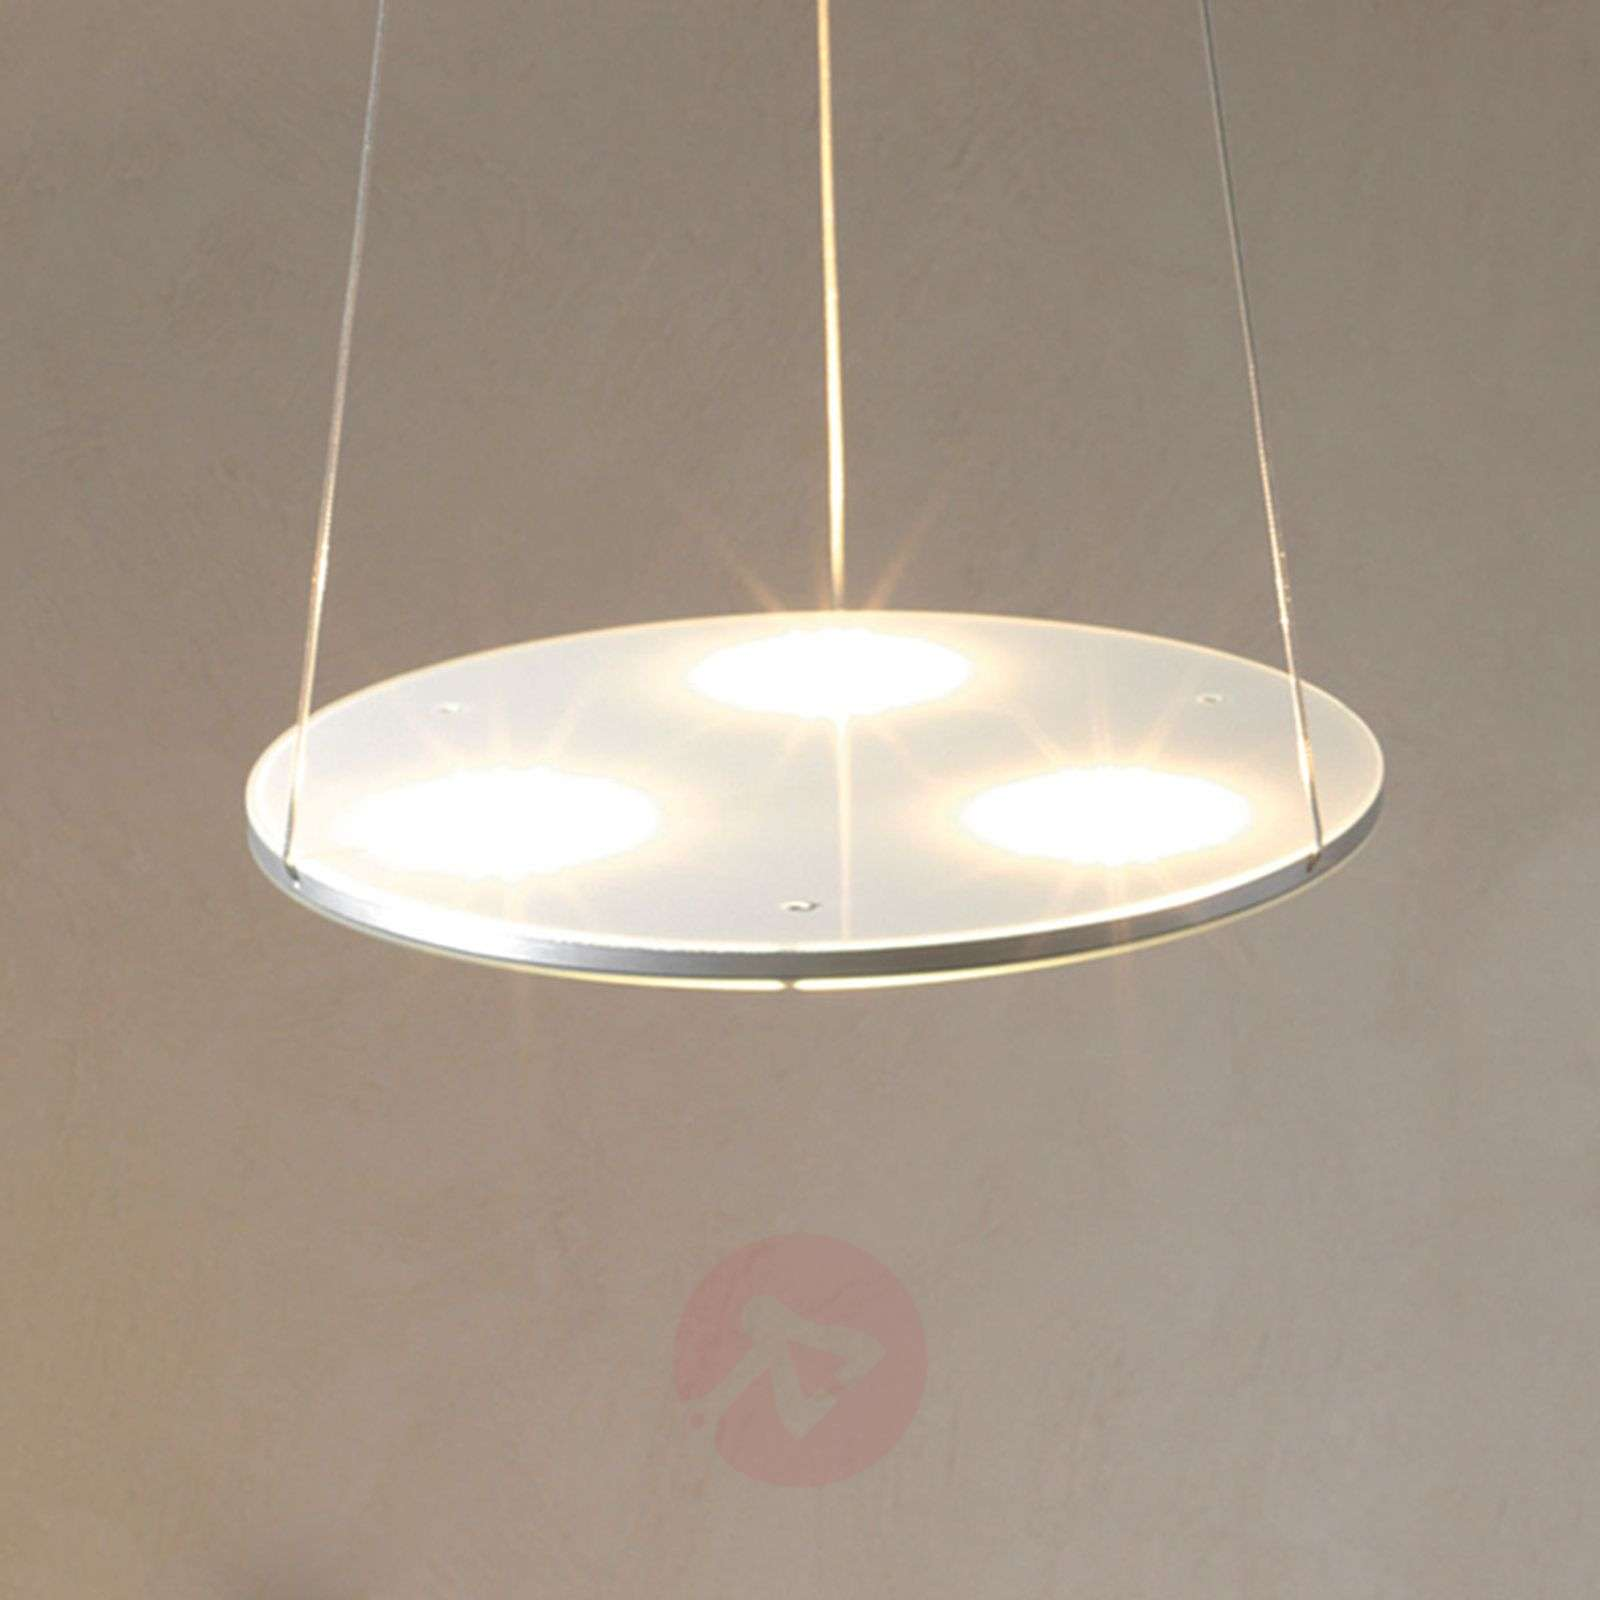 hubbardton forge products disq detail product led stnd pendant large